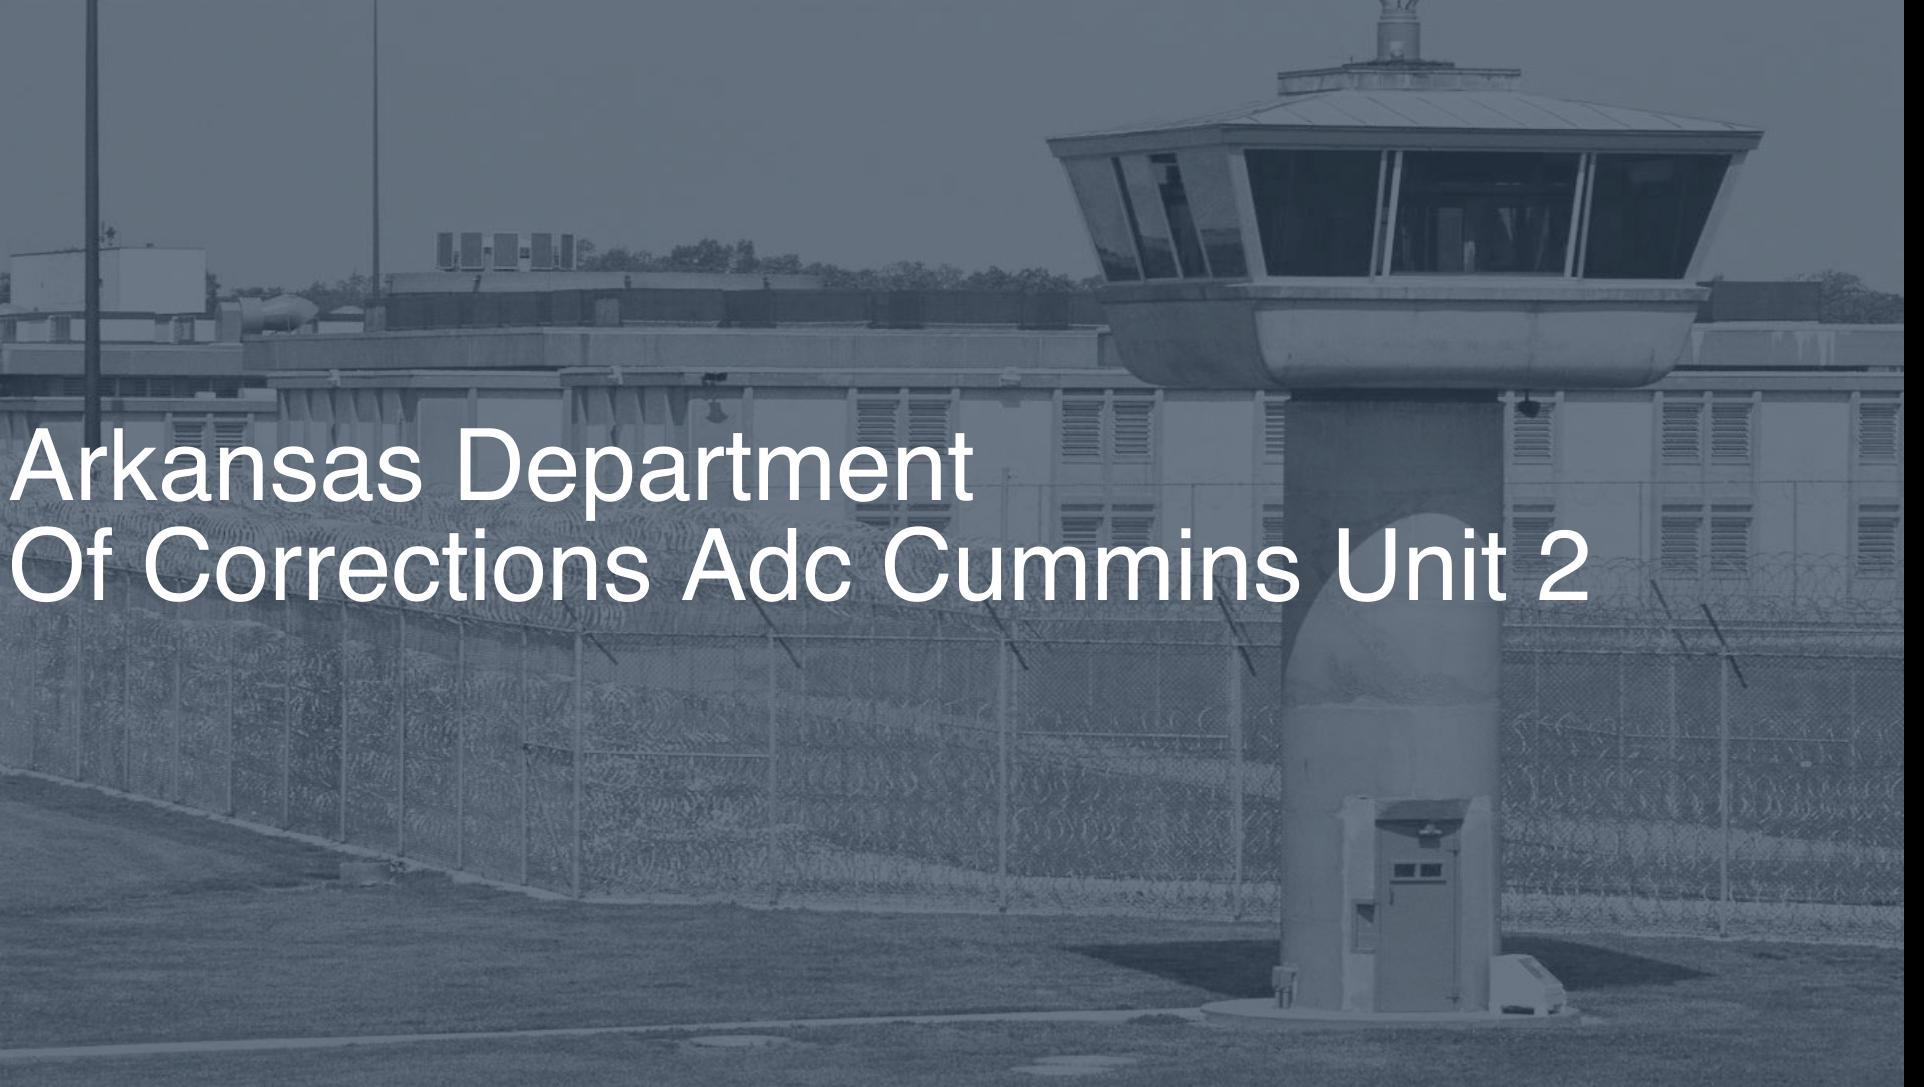 Arkansas Department of Corrections (ADC) – Cummins Unit